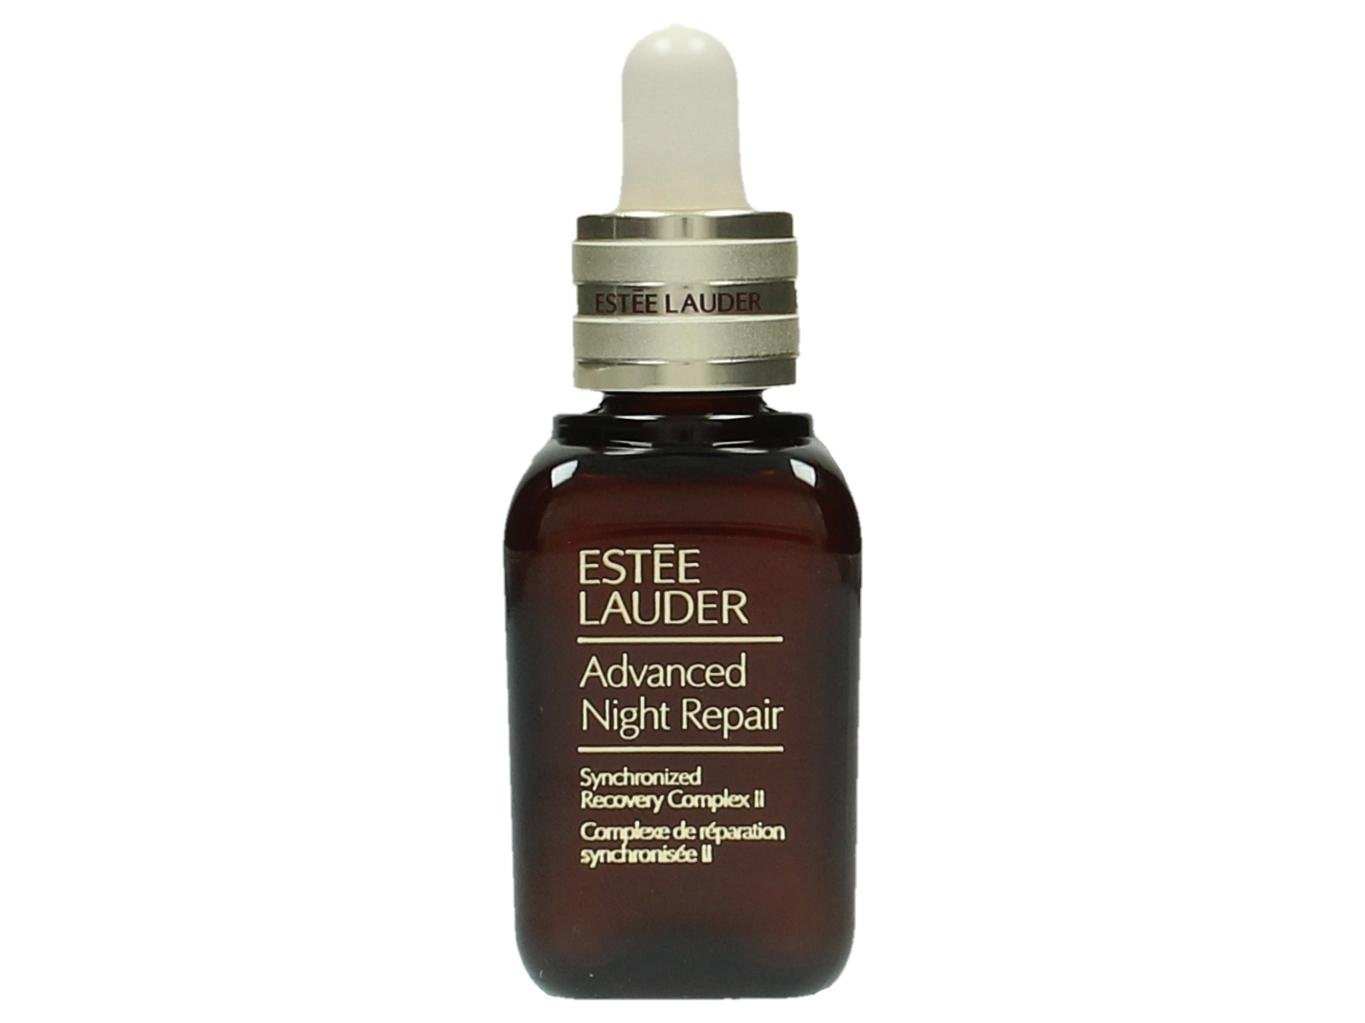 Estee Lauder Advanced Night Repair Synchronized Recovery Complex II 30ml 0027131264637 EST00123